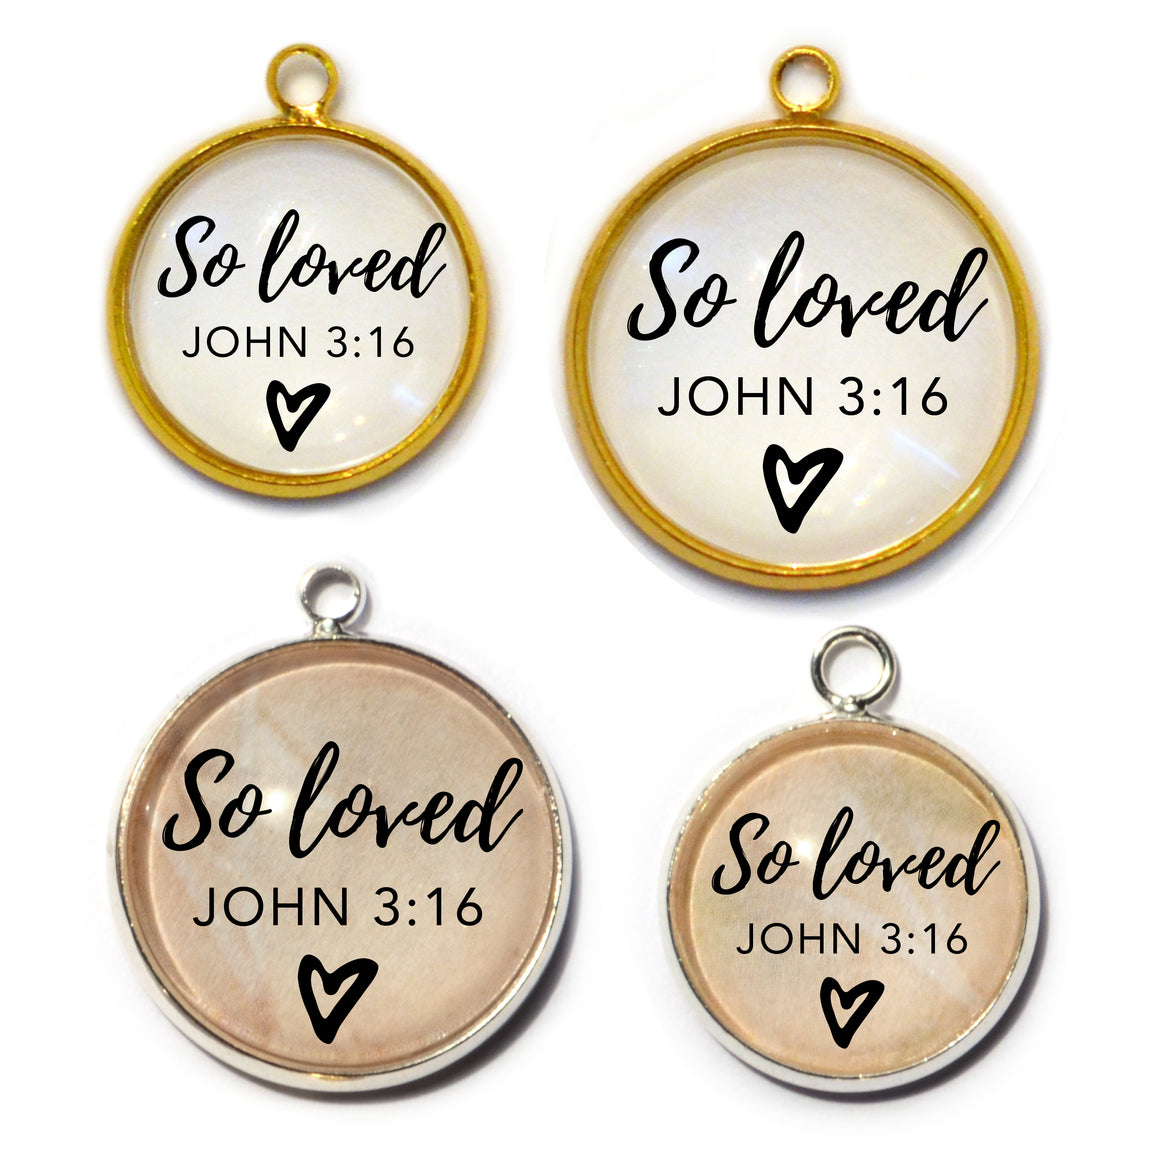 """So Loved"" John 3:16 Charm for Jewelry Making, 16 or 20mm, Silver, Gold"